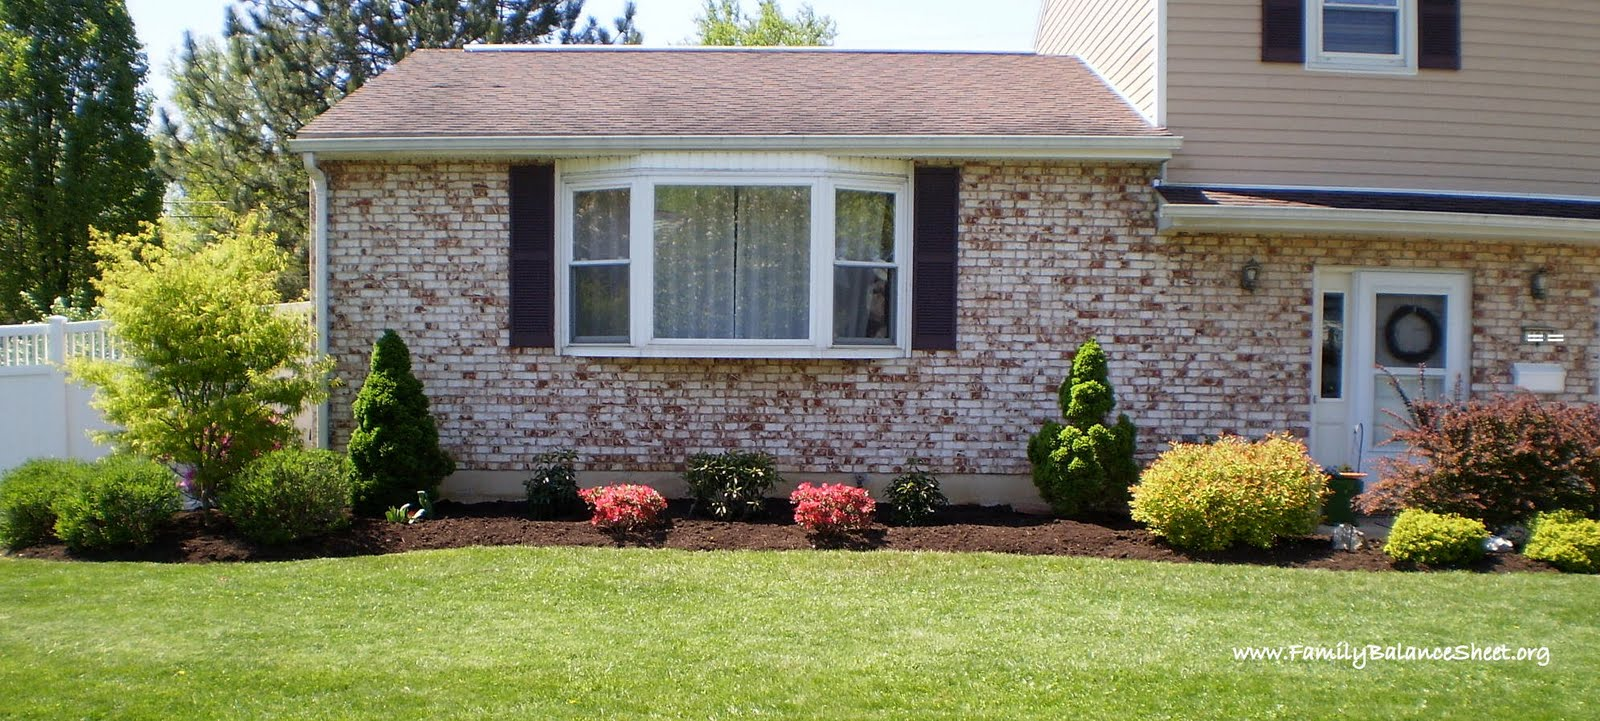 15 tips to help you design your front yard save money too for Garden design front of house